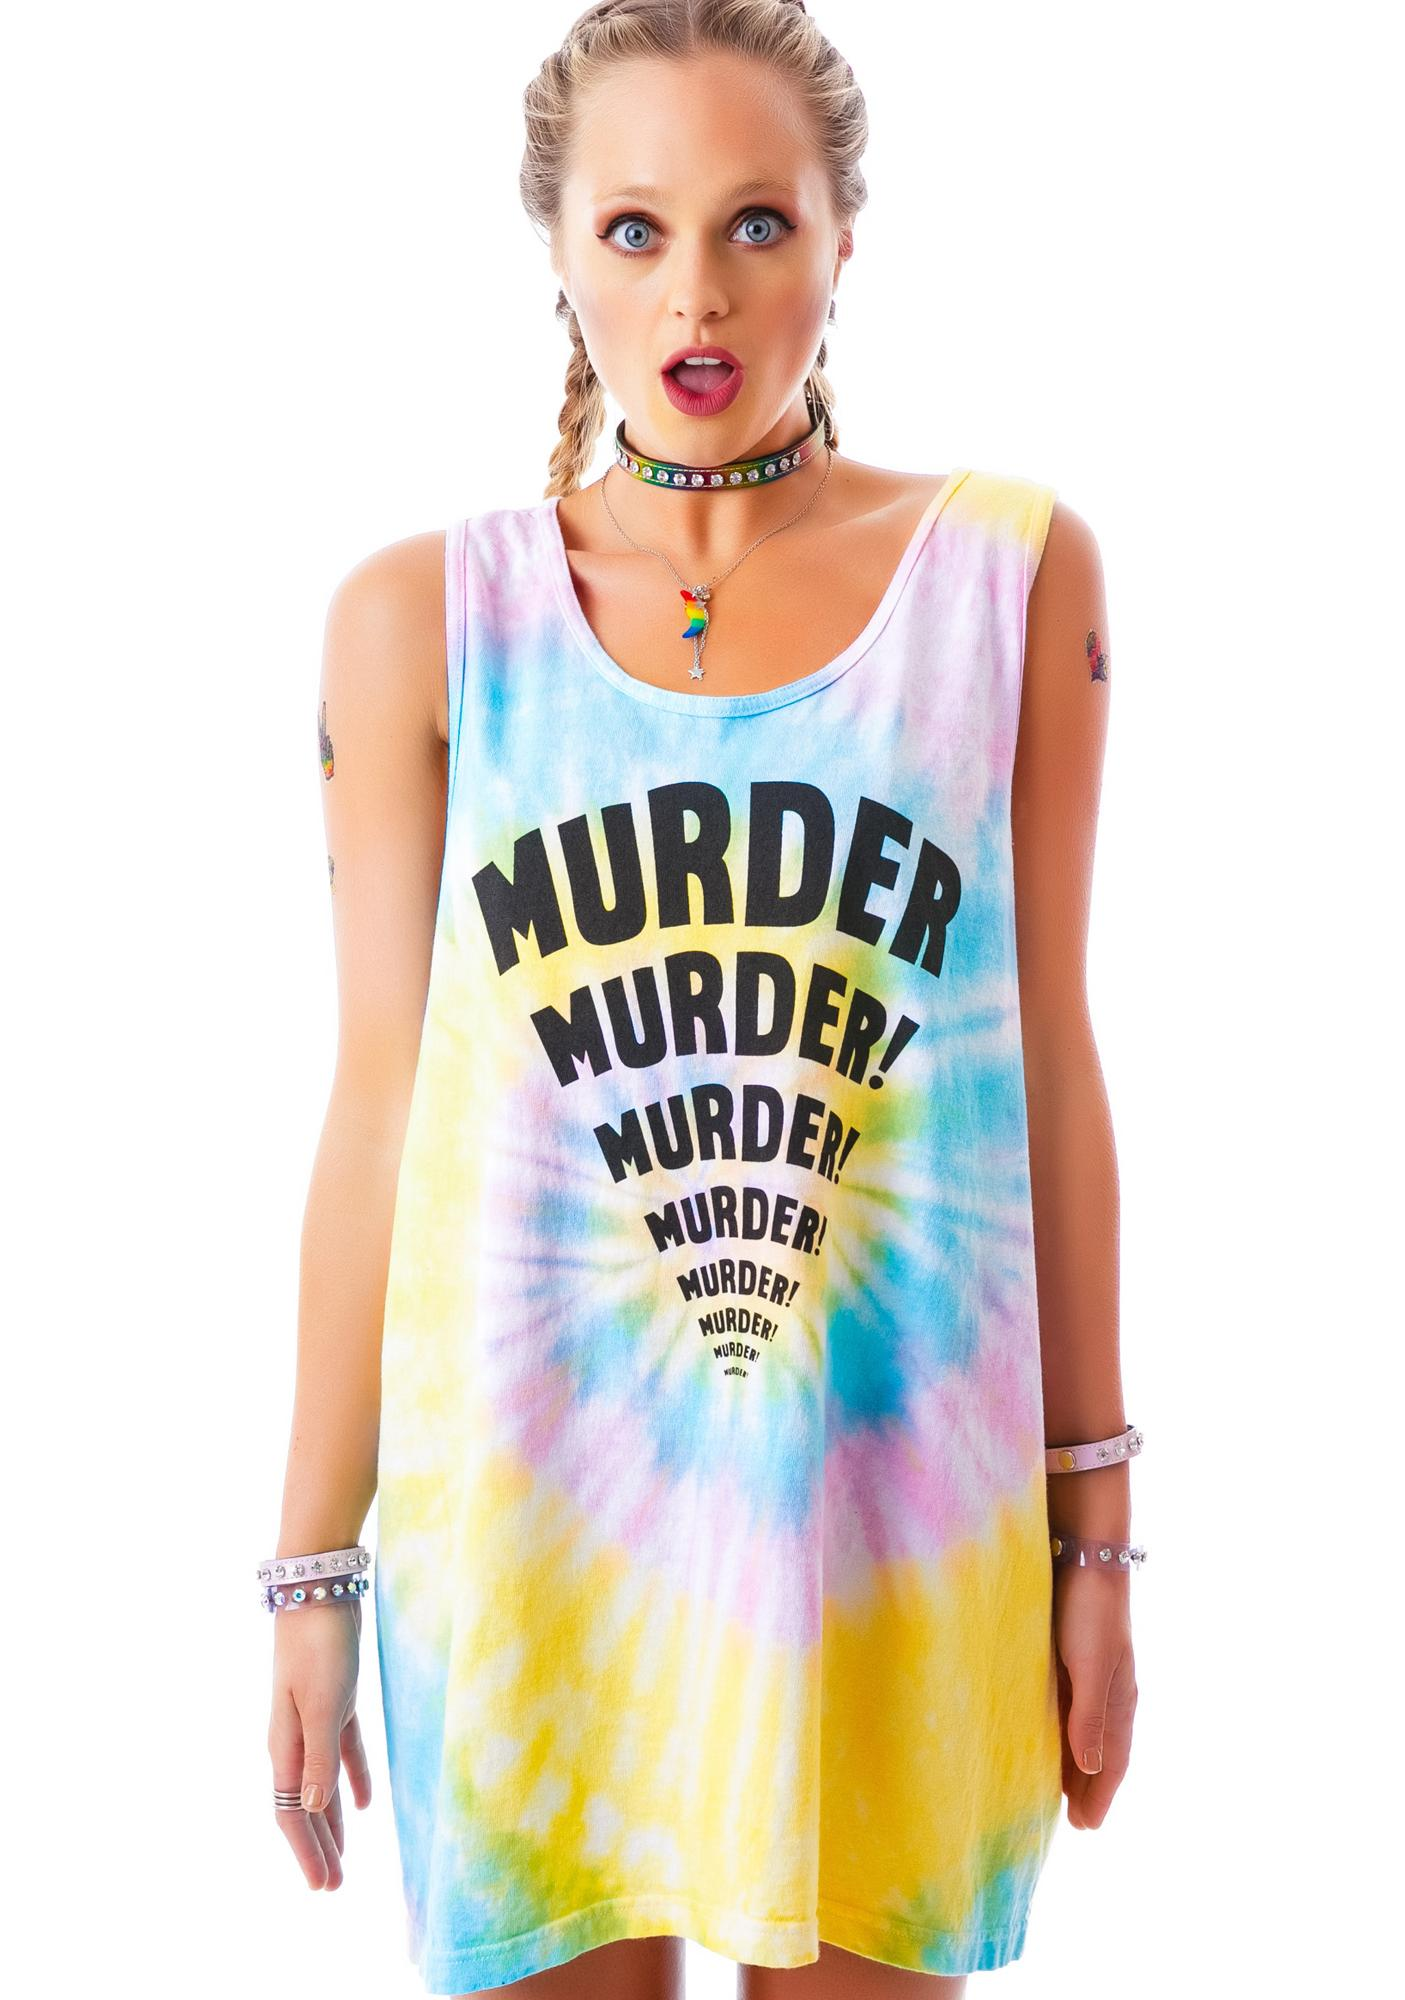 United Couture Murder Boyfriend Tank Top